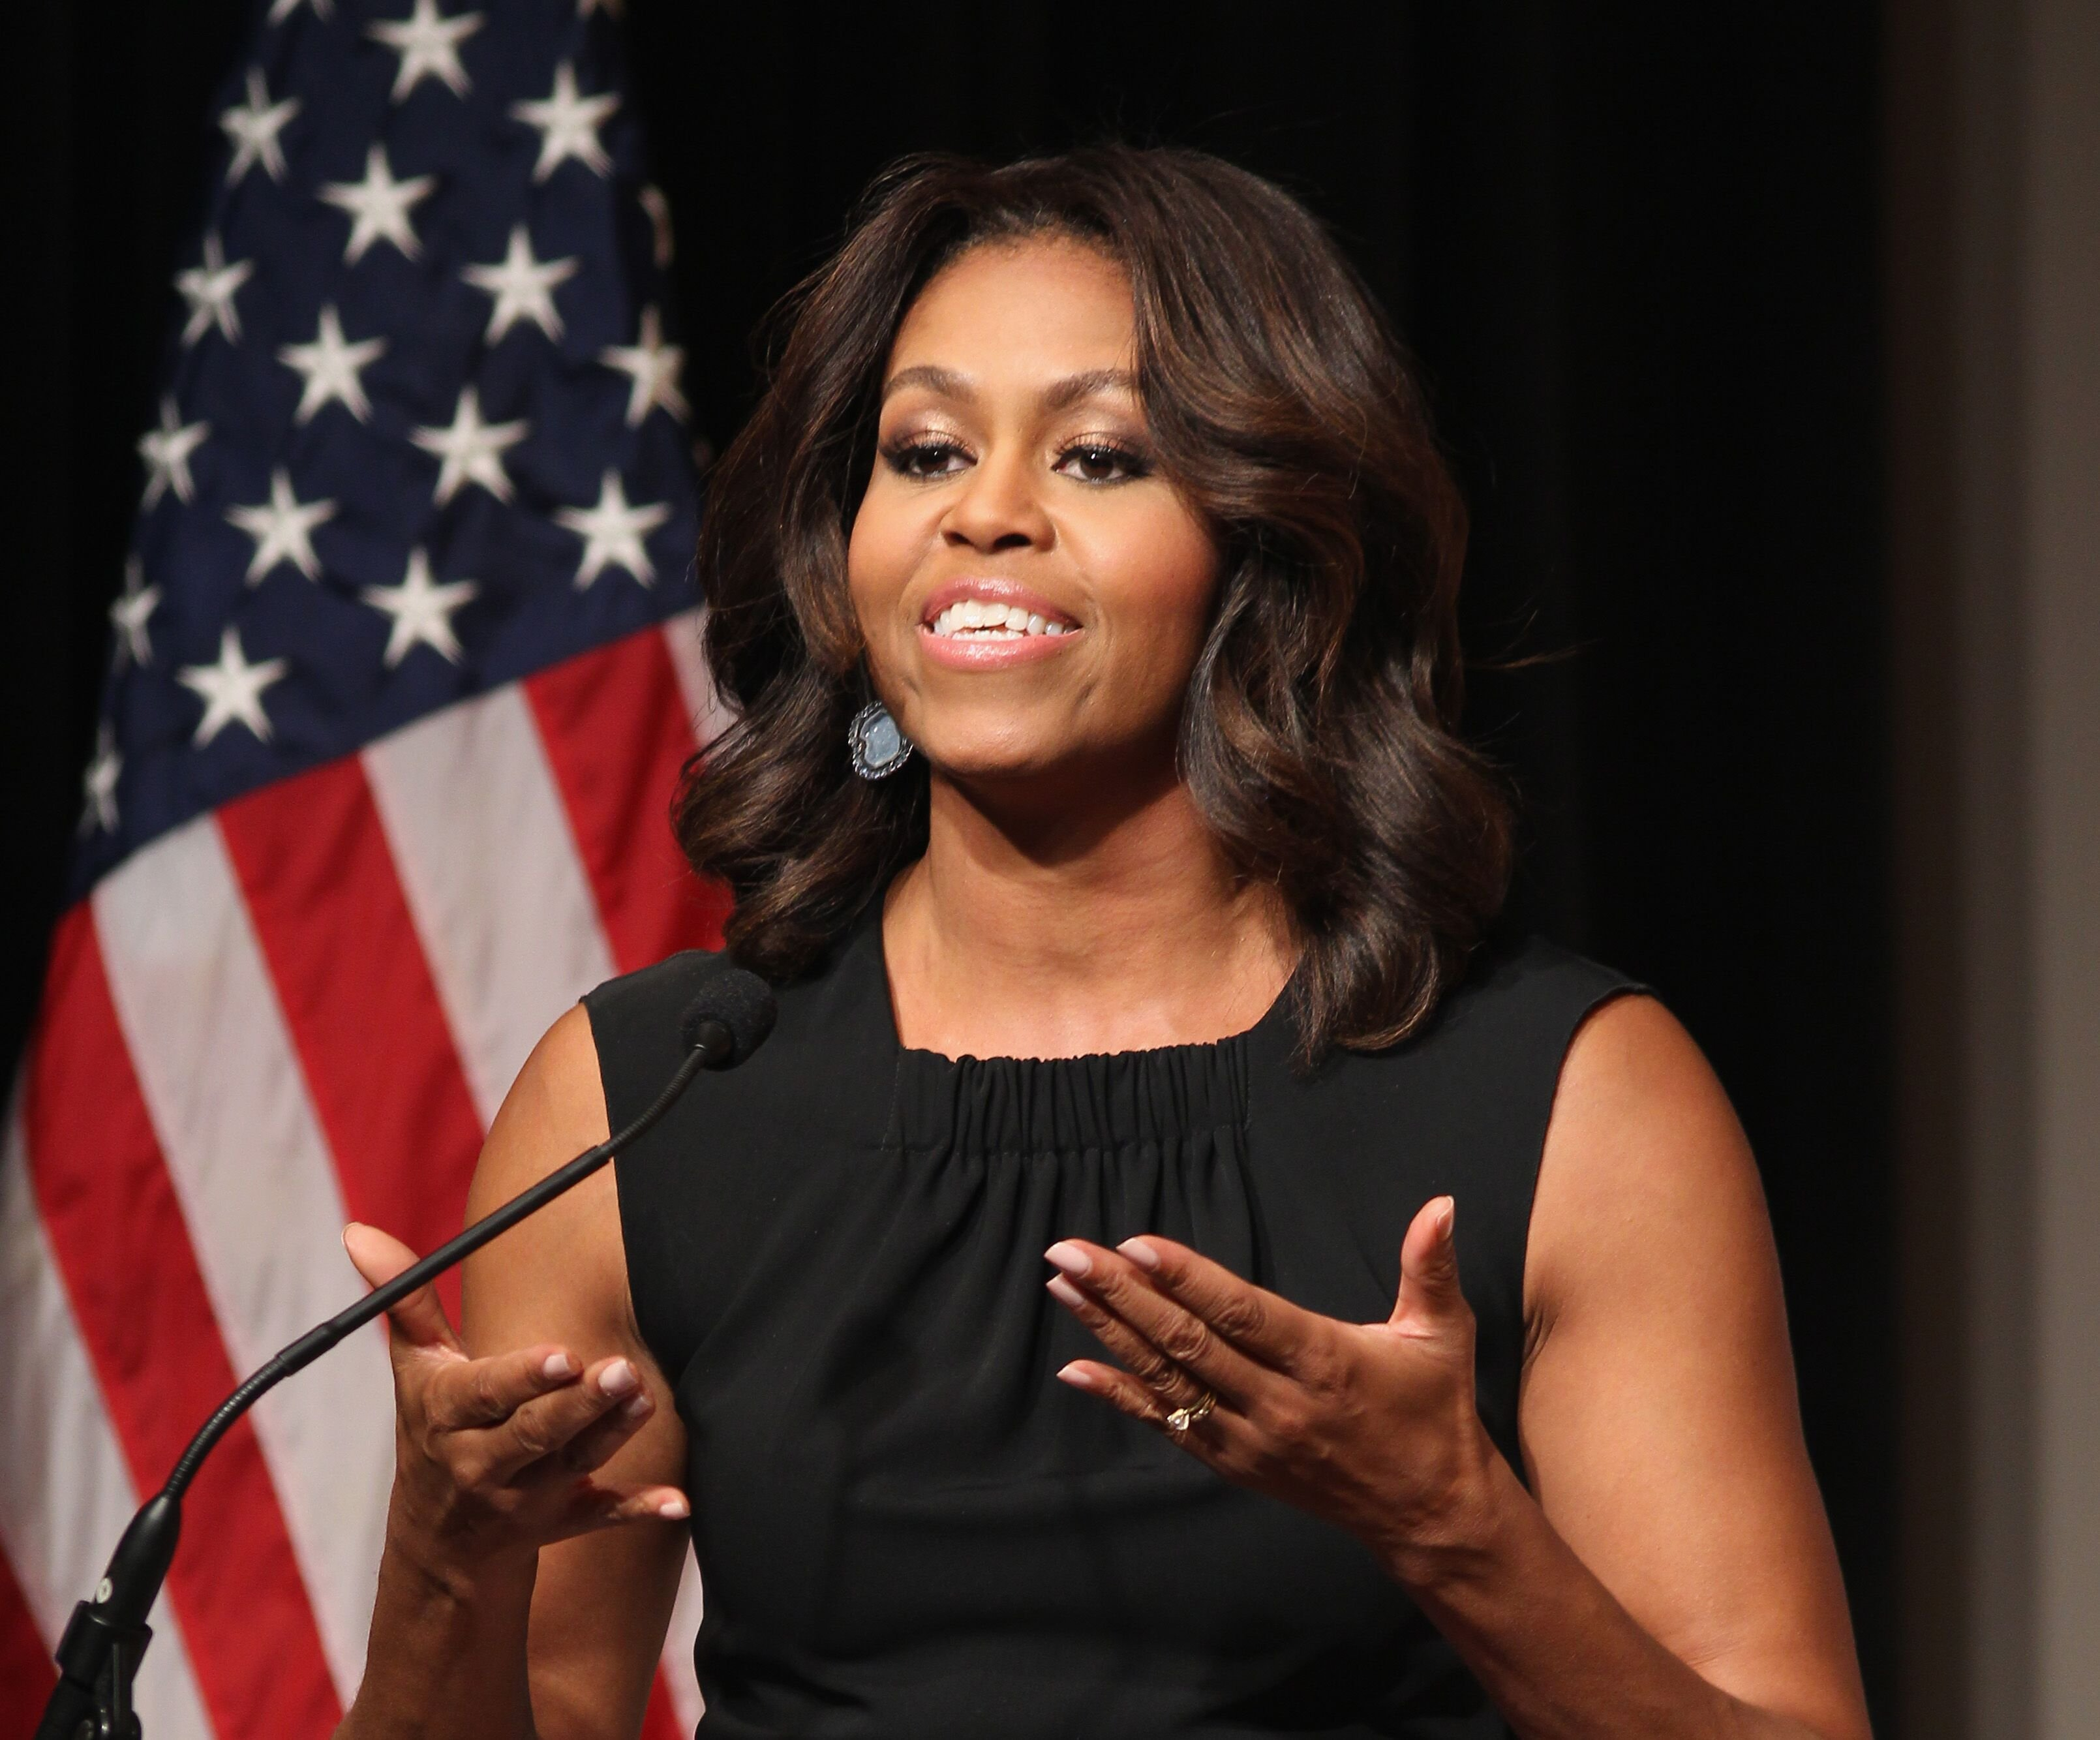 The former First Lady of the United States Michelle Obama speaks on stage at the Women Veterans Career Development Forum at Women in Military Service for America Memorial on November 10, 2014 | Photo: Getty Images